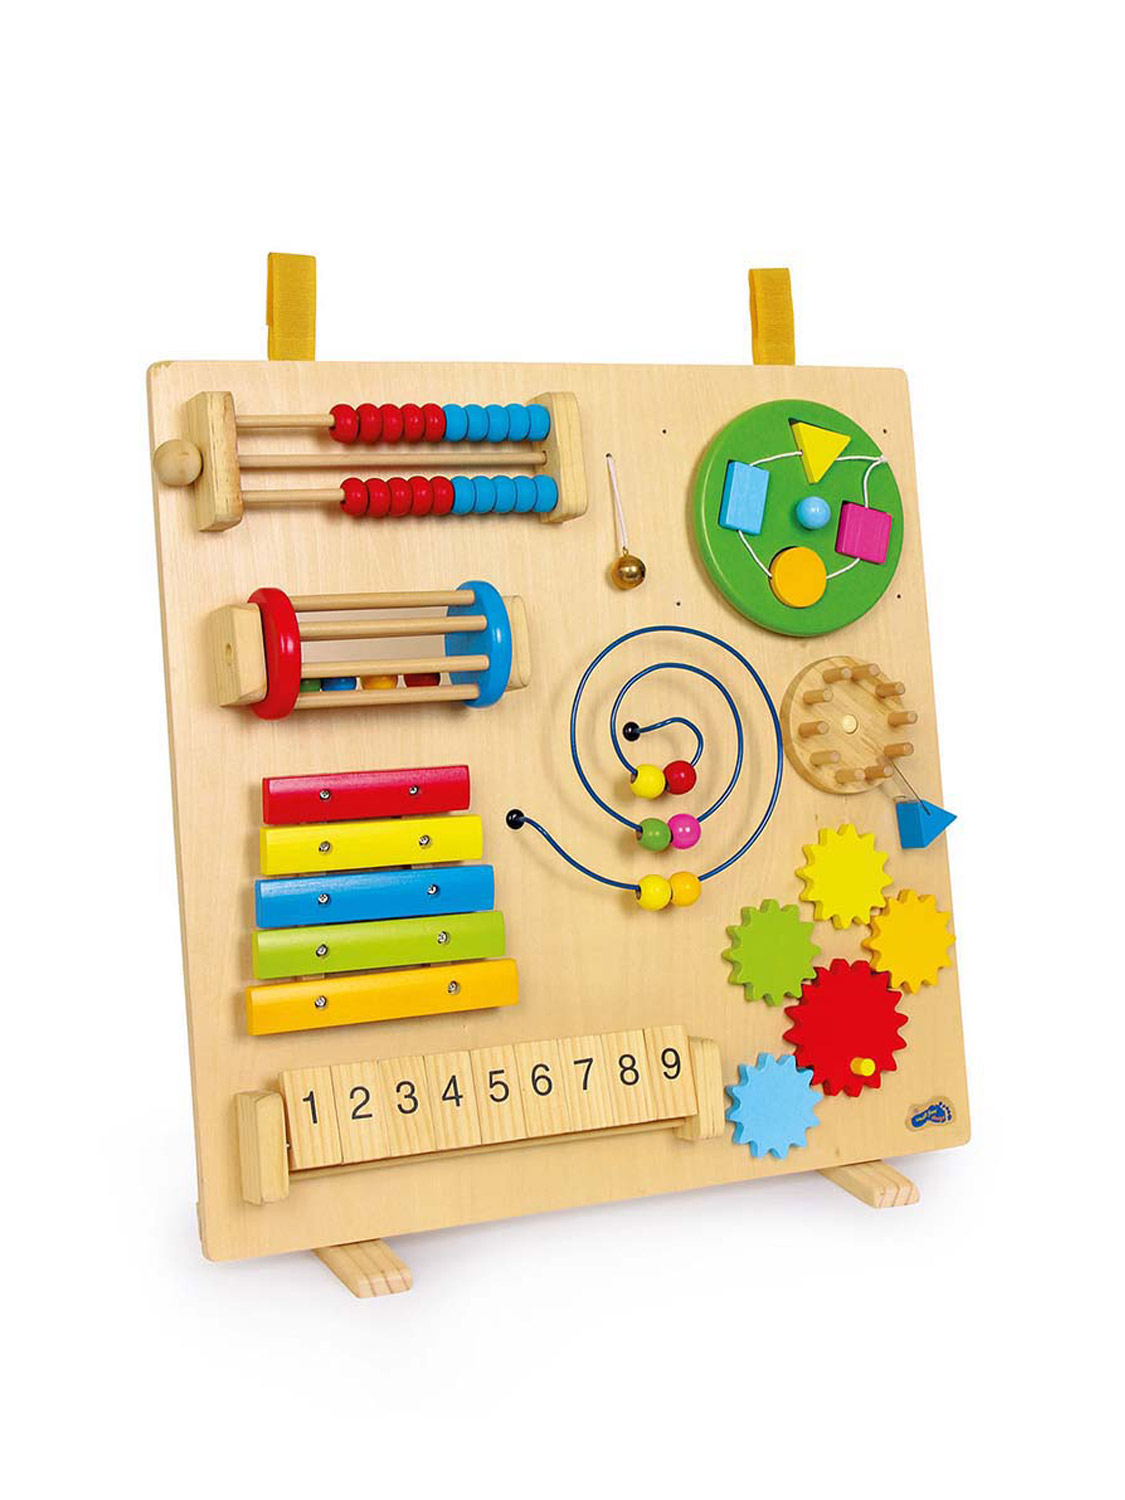 Stimulating Toys For Toddlers : Wooden activity sensory centre baby childrens educational